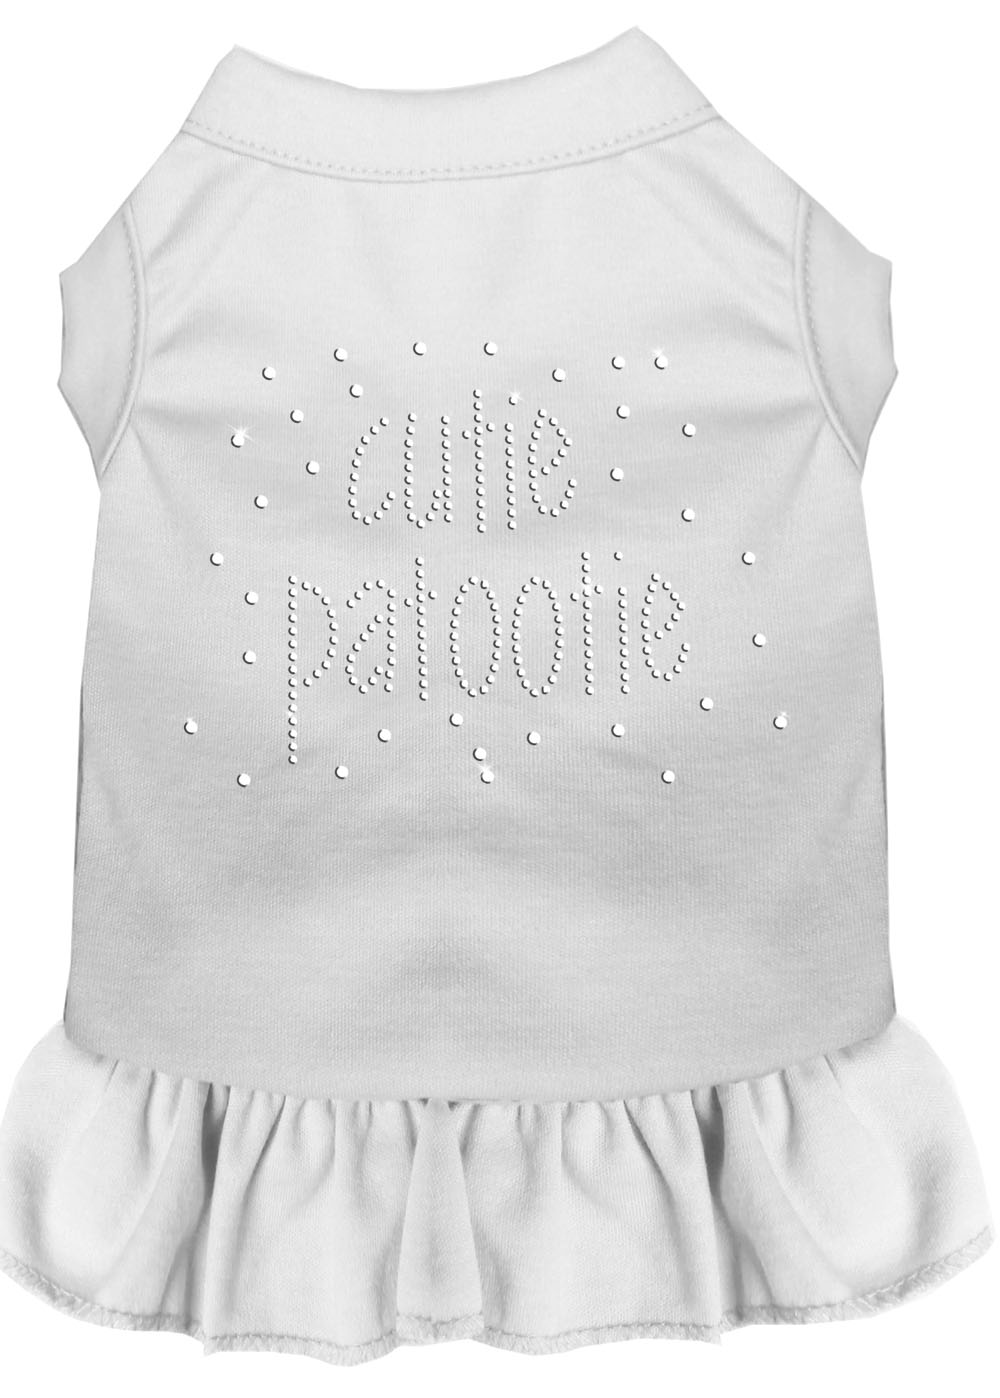 Rhinestone Cutie Patootie Dress White